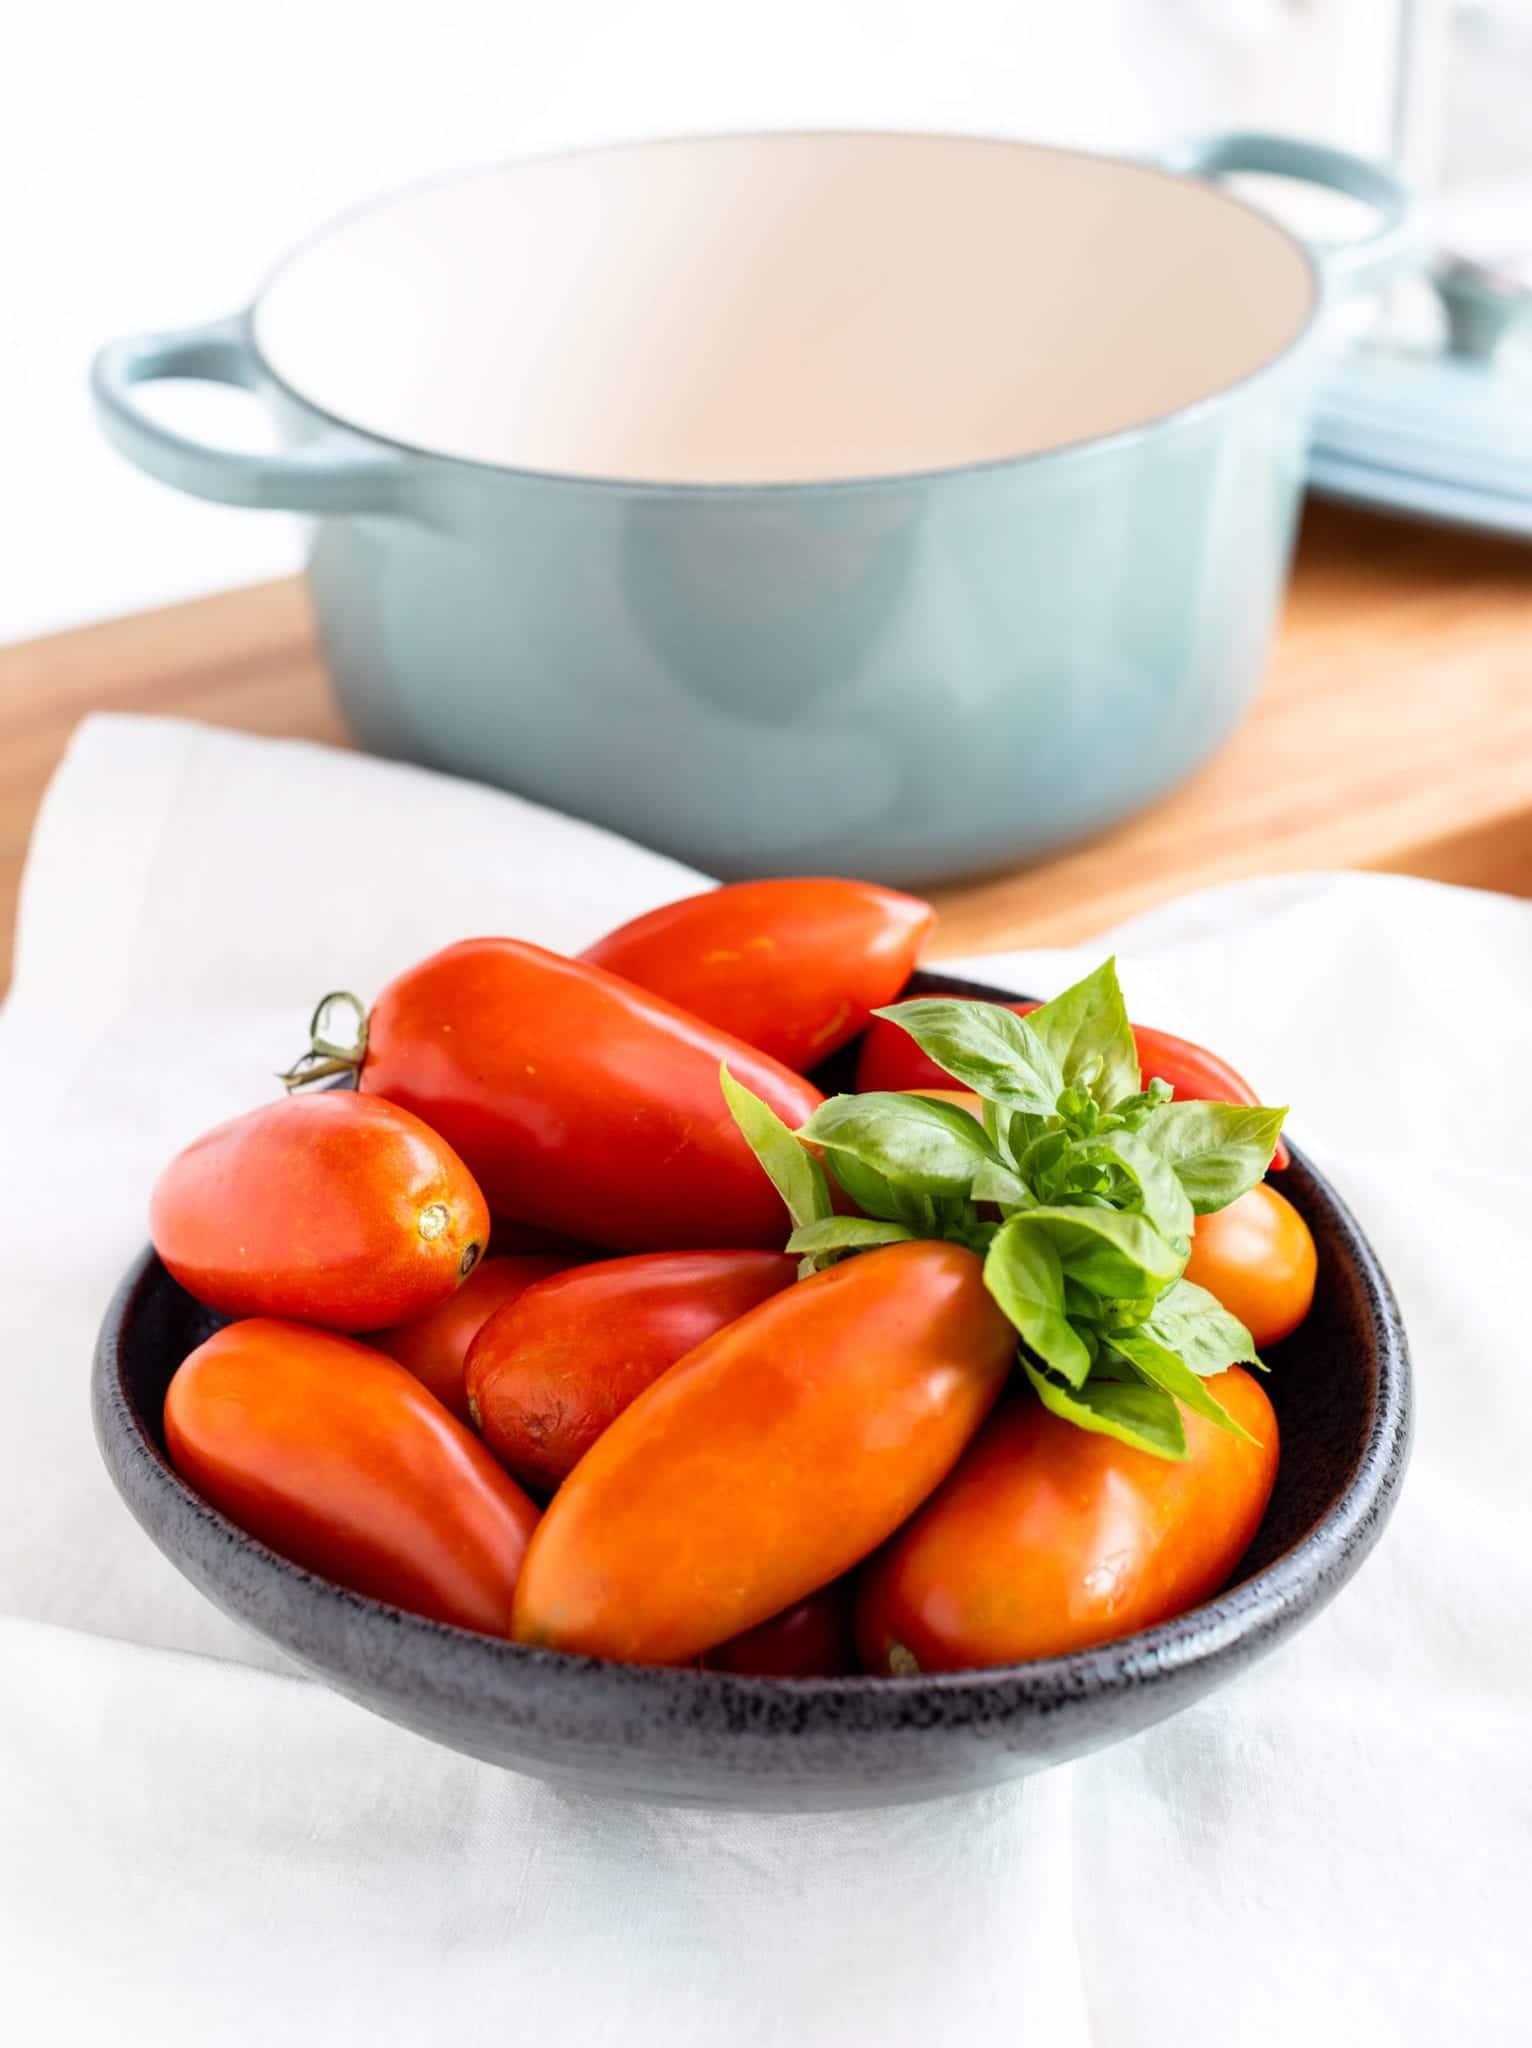 Homemade Tomato Sauce with Fresh Tomatoes - Plum tomatoes stacked in full black textured bowl with a sprig of basil on linen